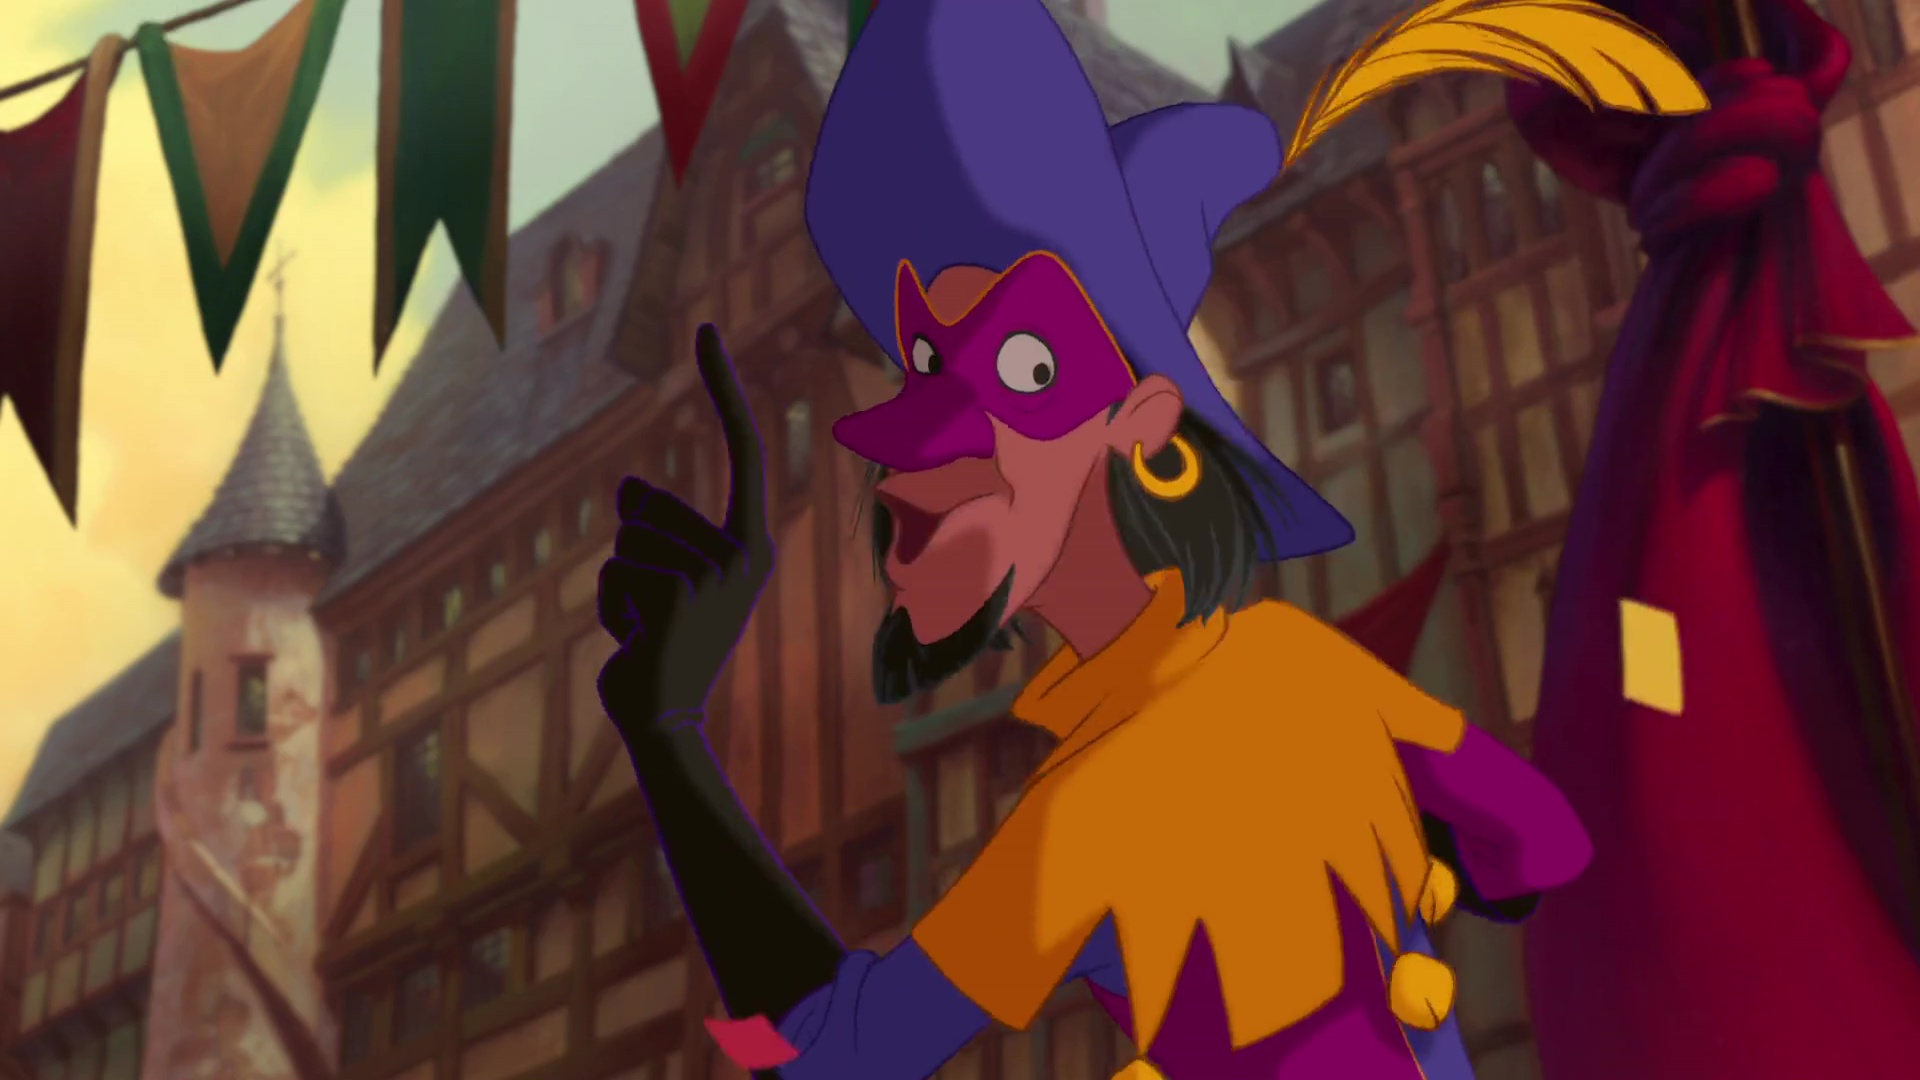 clopin personnage bossu notre-dame disney character hunchback